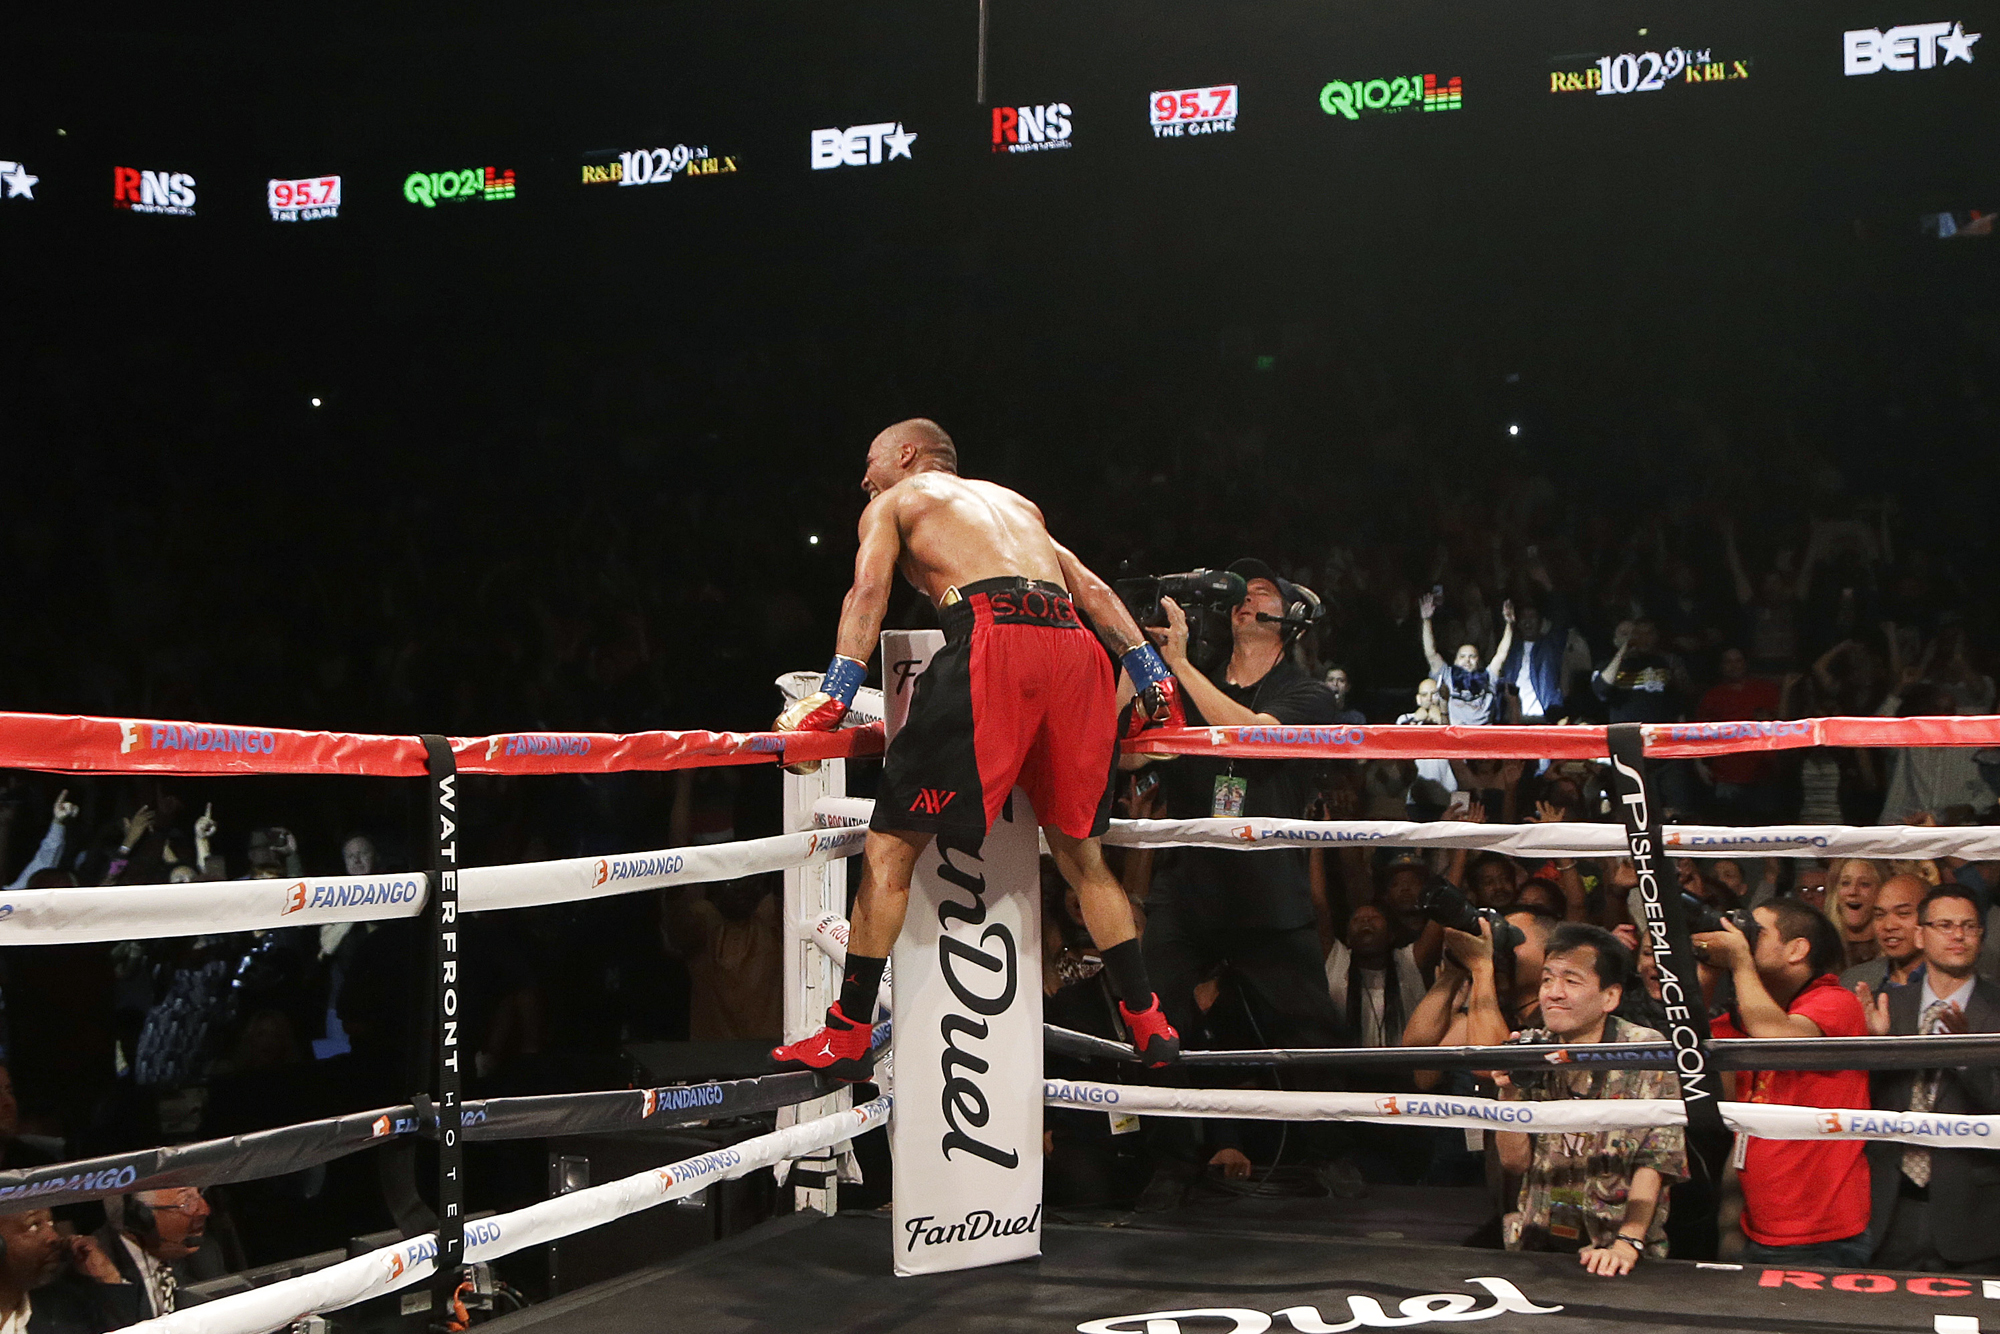 Andre Ward celebrates after beating Paul Smith in a cruiserweight boxing match in Oakland, Calif., Saturday, June 20, 2015. Ward won when Smith's corner threw in the towel in the ninth round.